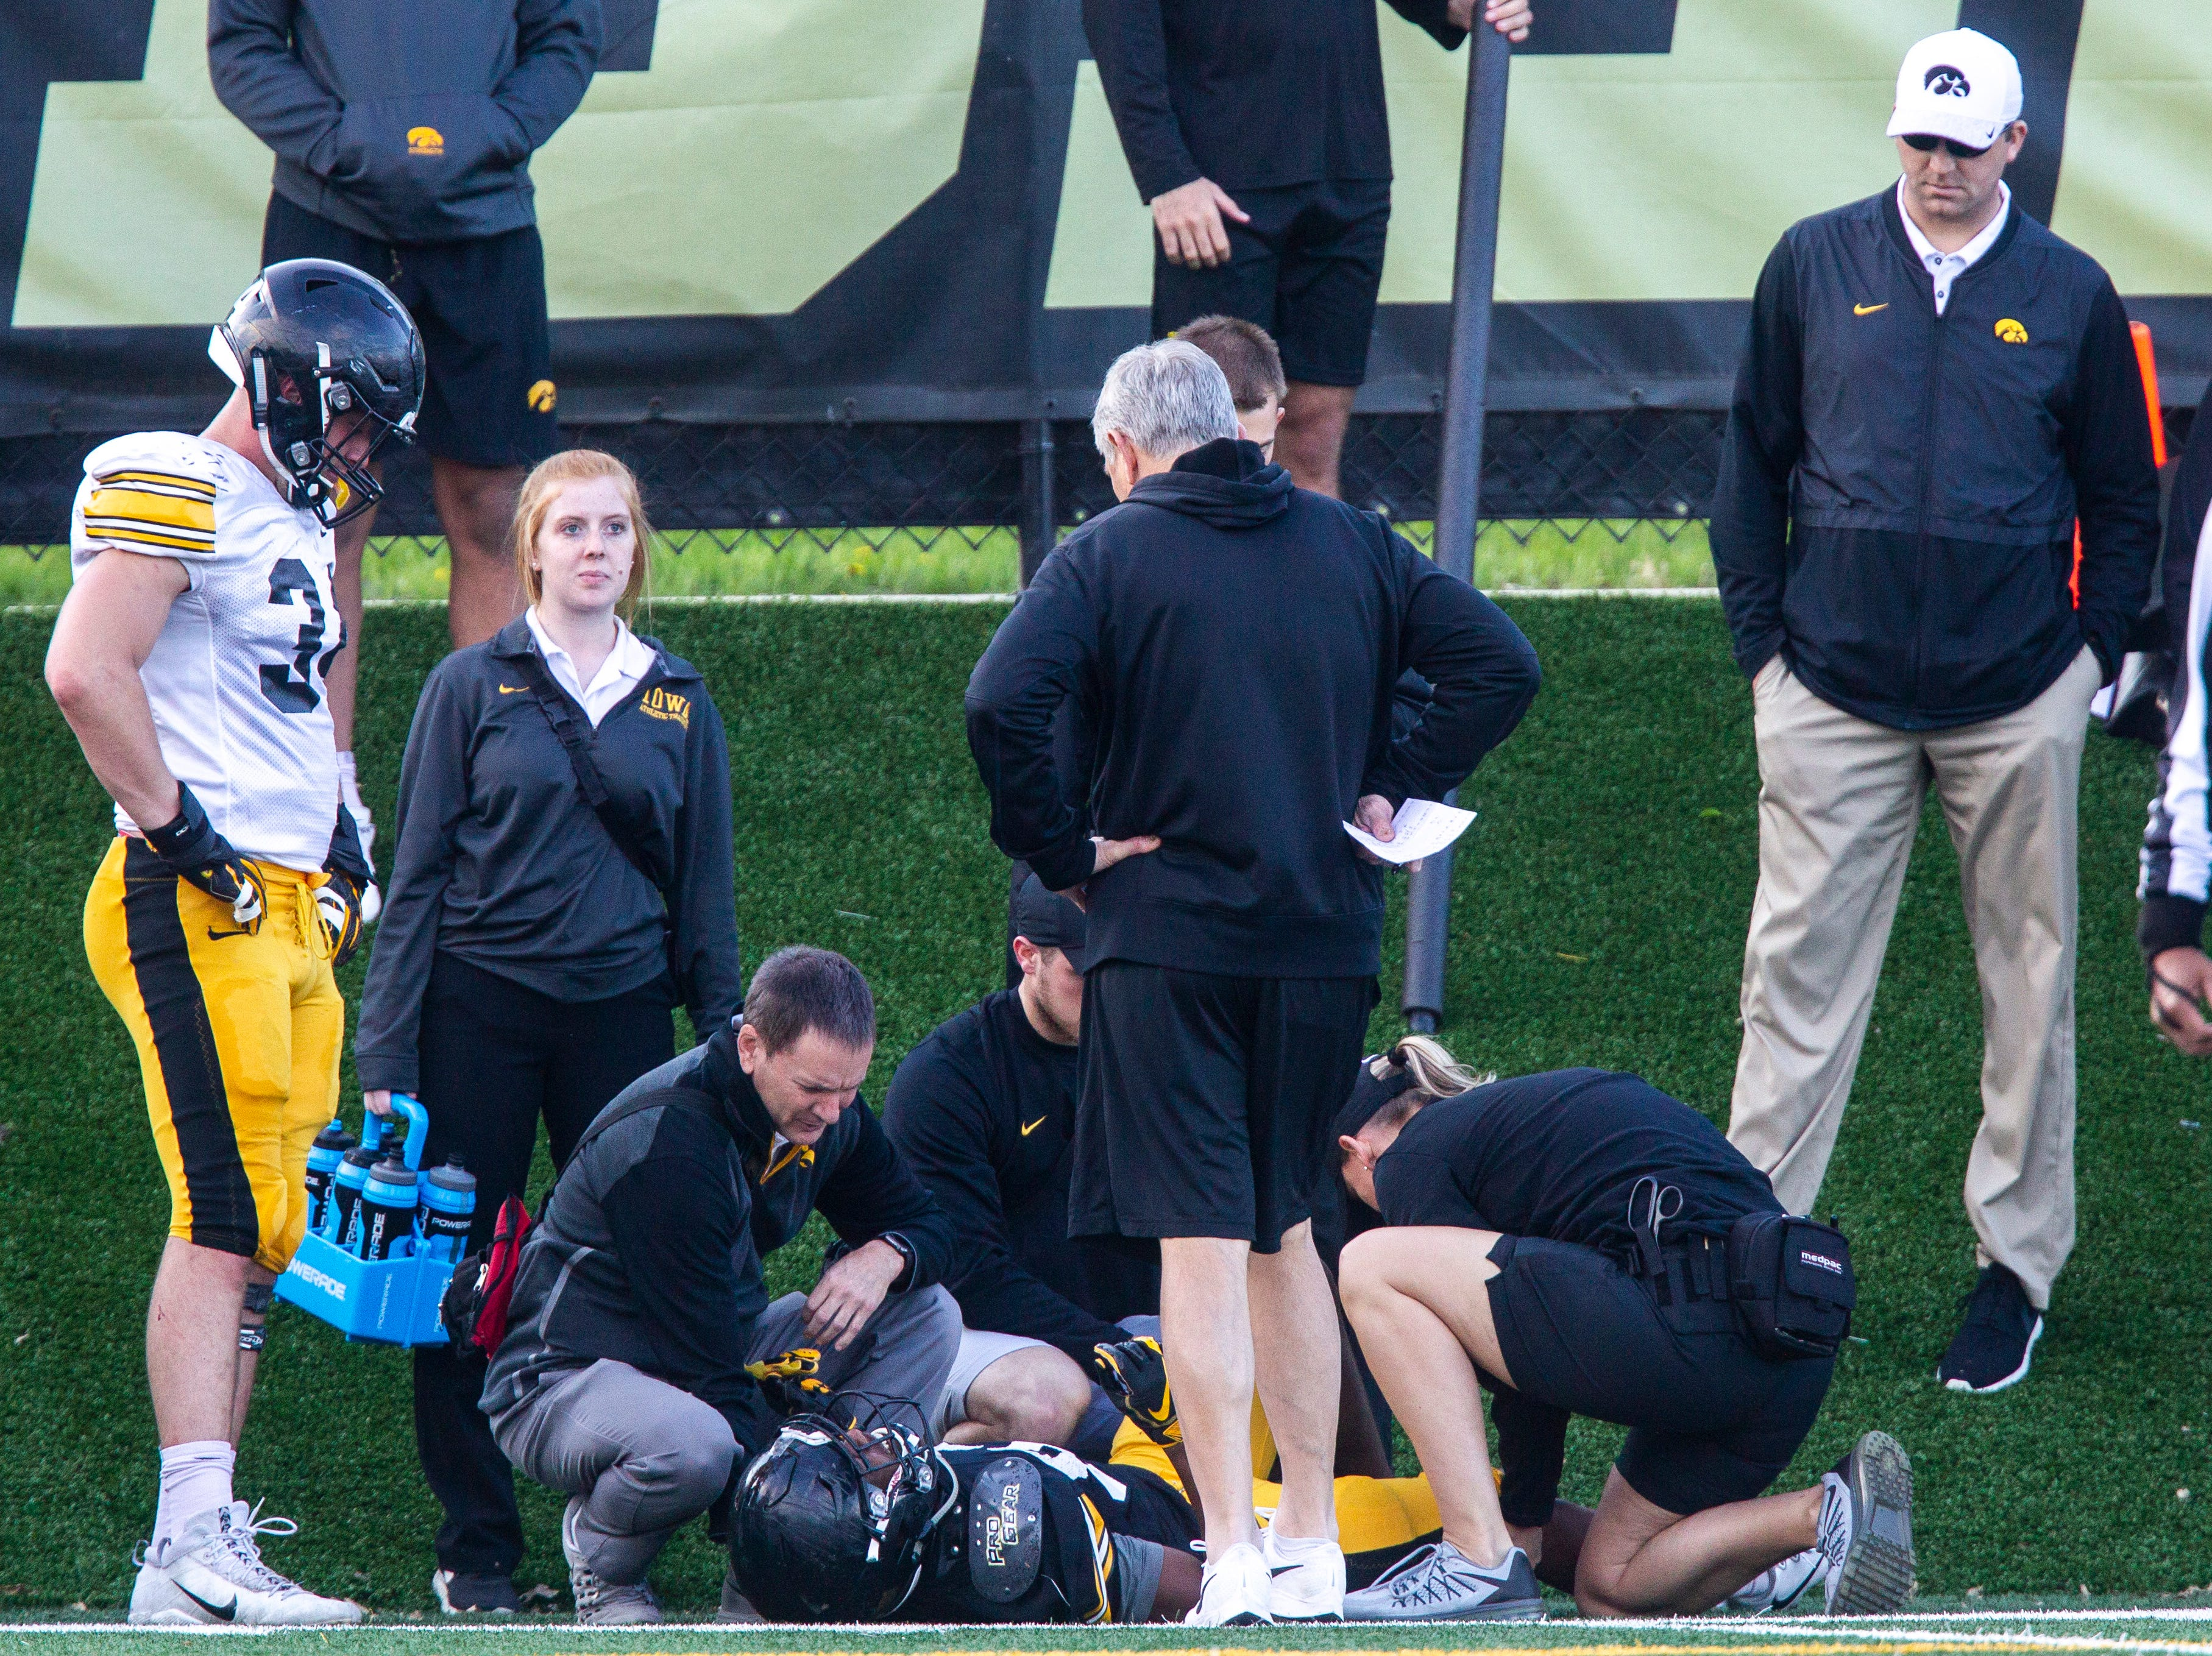 Iowa linebacker Kristian Welch, left, stands with head coach Kirk Ferentz next to wide receiver Calvin Lockett (82) as he gets helped by staff after getting tangled up on a contested ball during the final spring football practice, Friday, April 26, 2019, at the University of Iowa outdoor practice facility in Iowa City, Iowa.